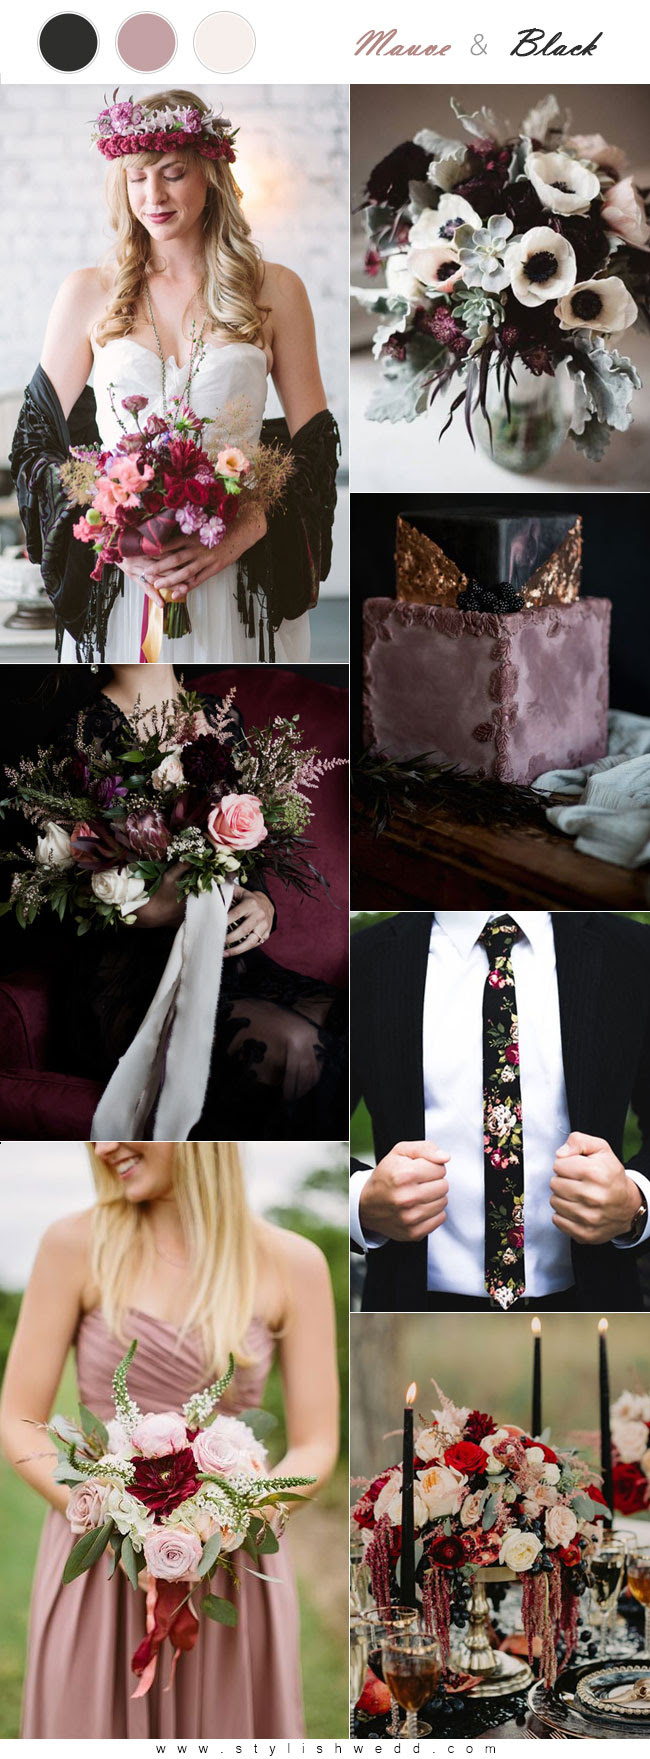 The Hottest 6 Mauve Wedding Color Palettes To Die For Stylish Wedd